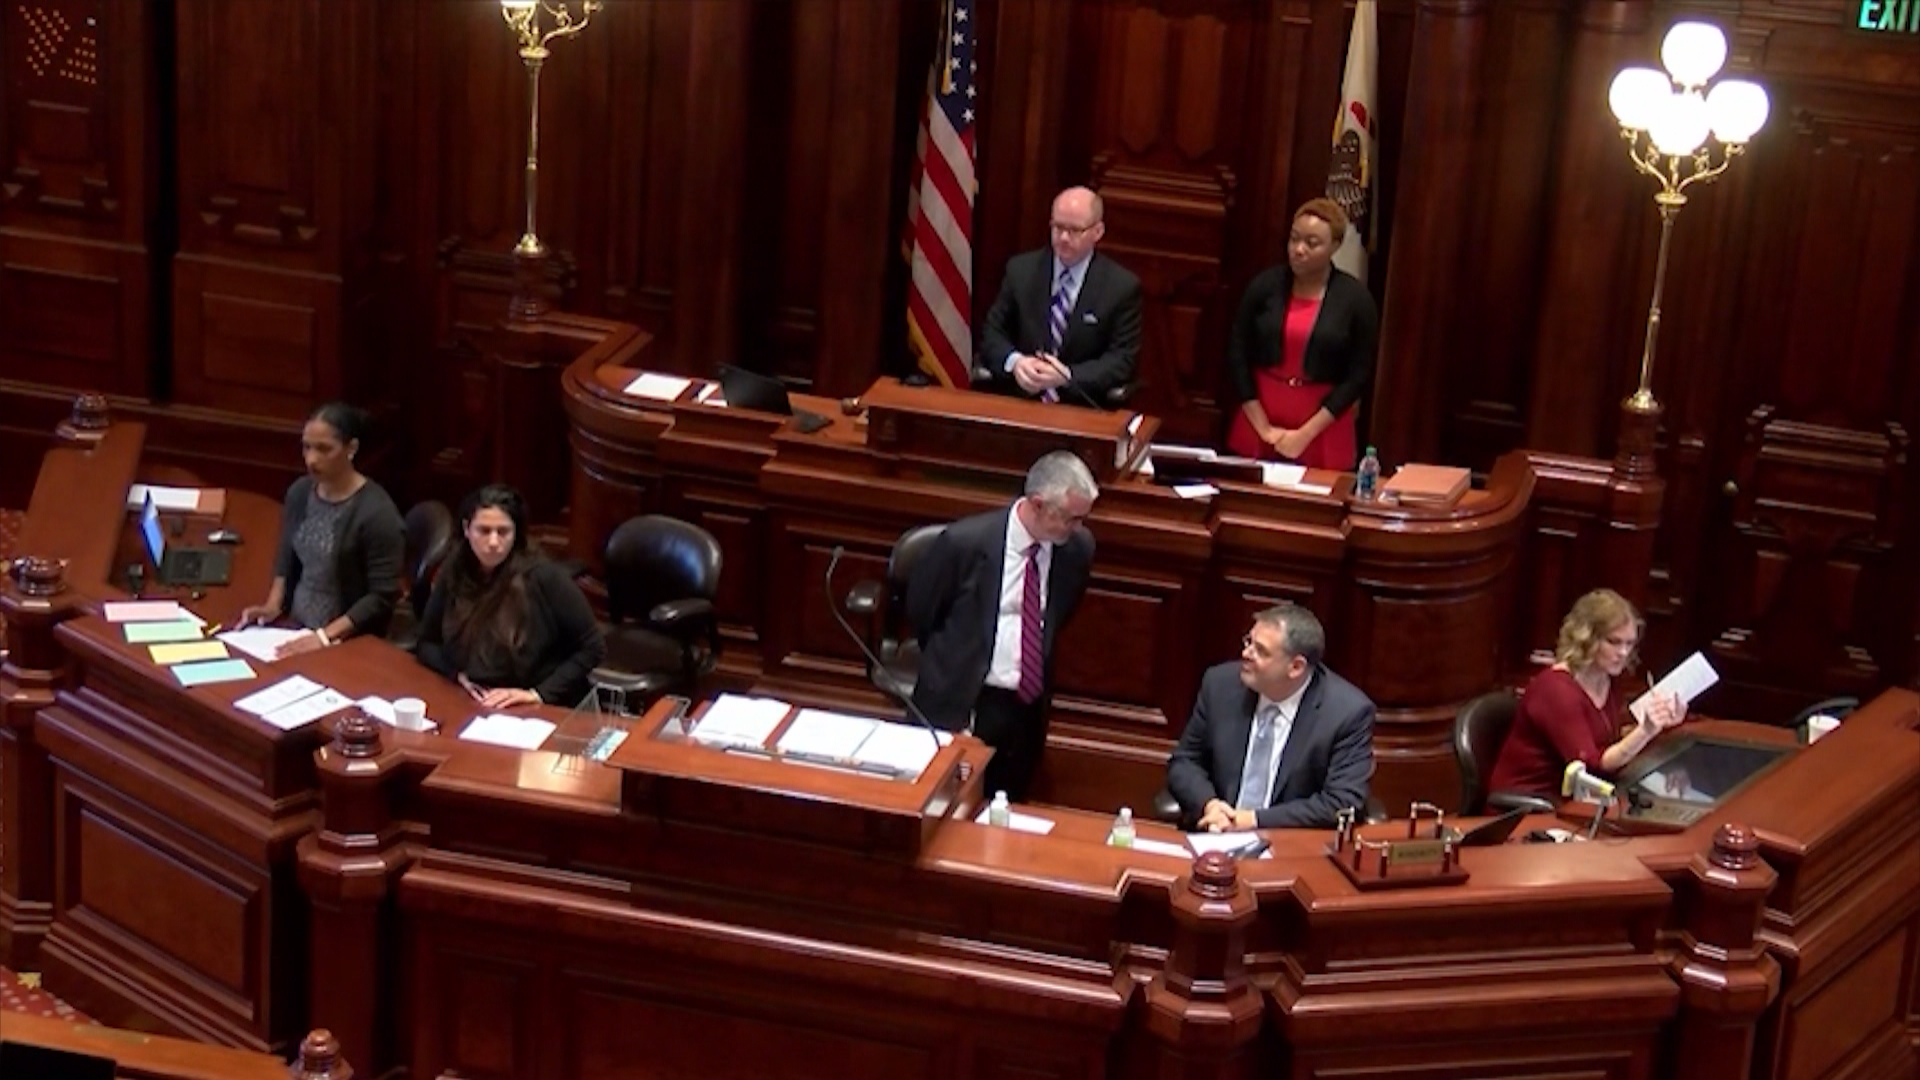 illinois general assembly_1510958075299.jpg